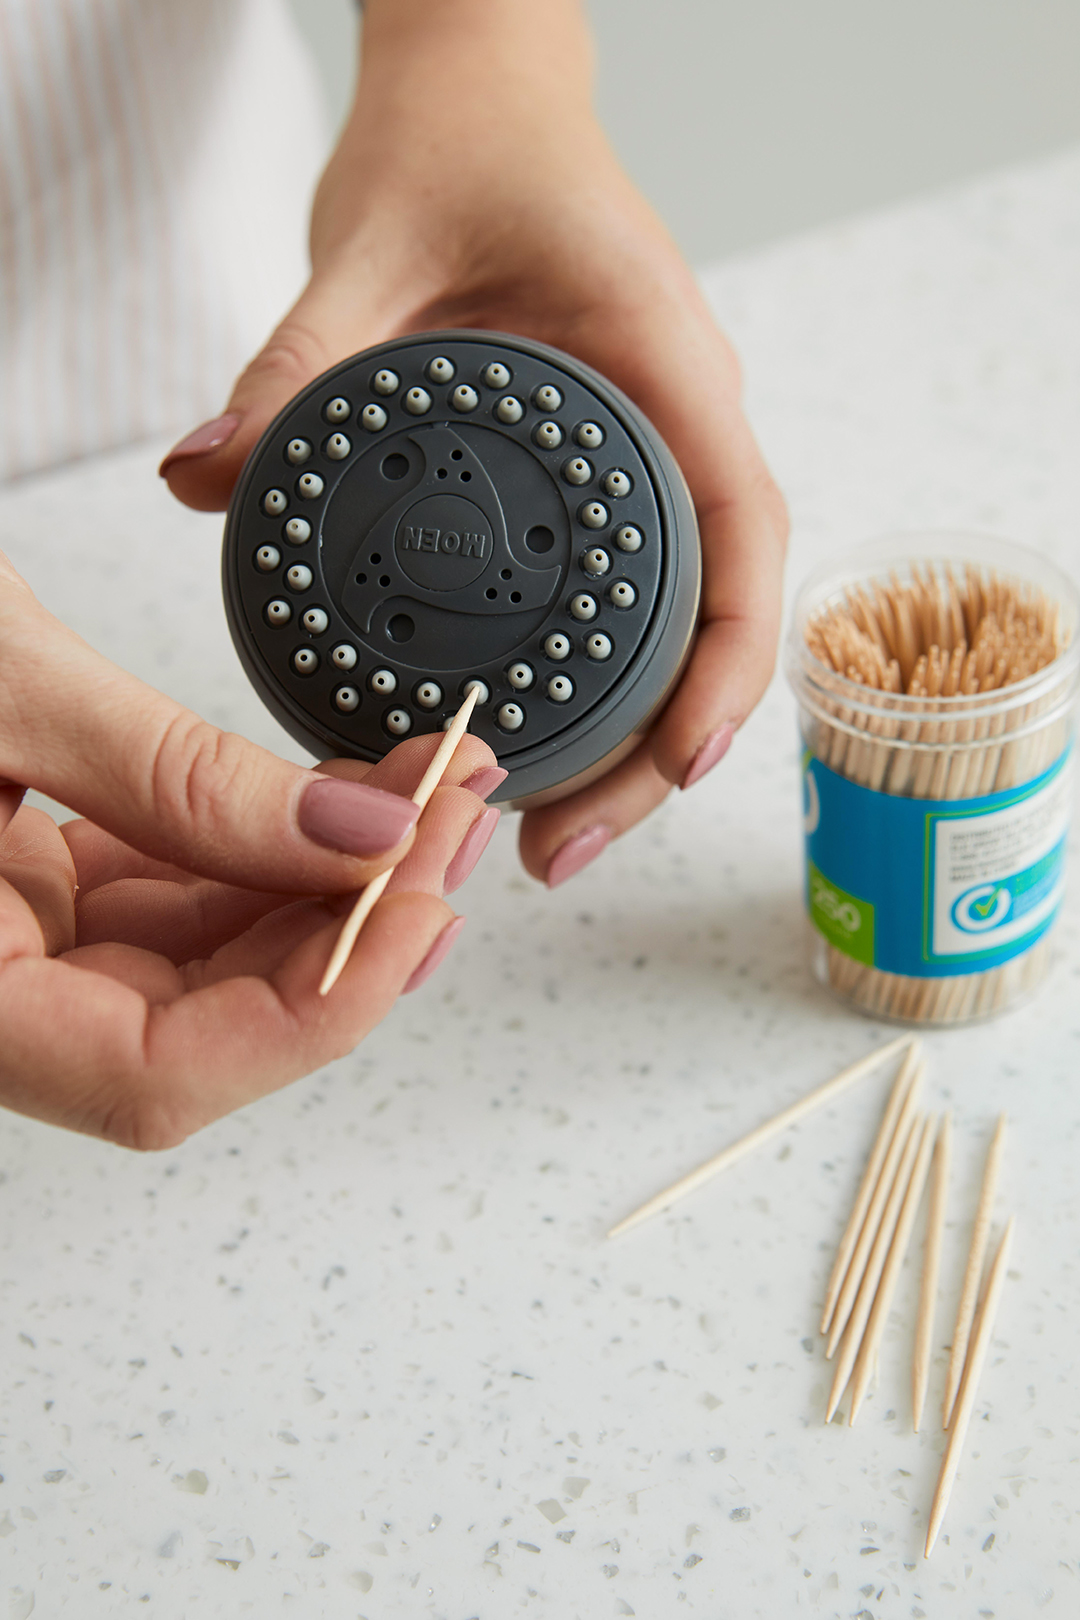 using toothpicks to clean shower head